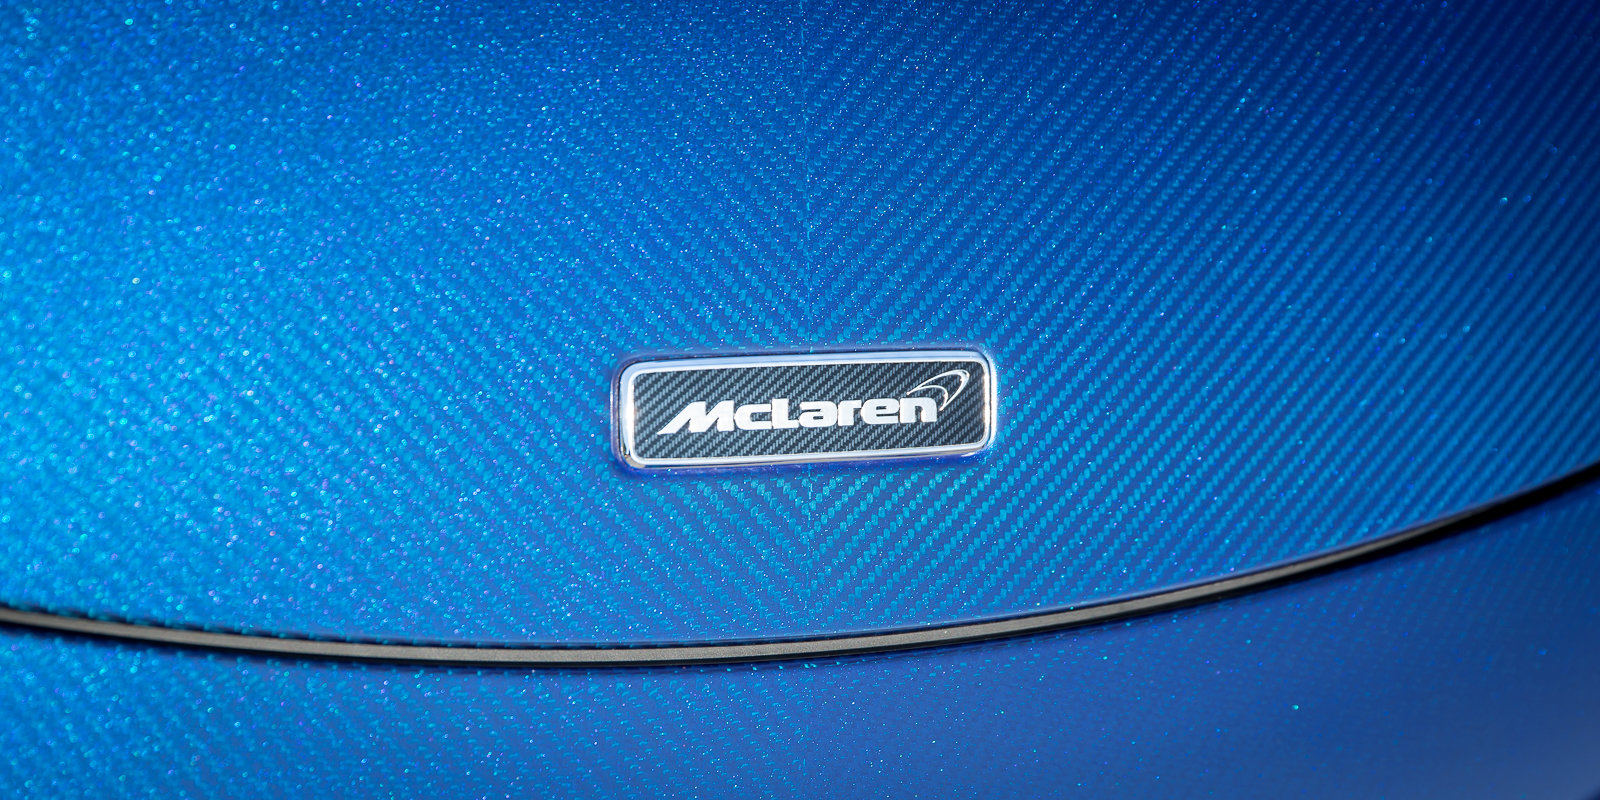 2012 McLaren 675LT Spider Carbon Series in Metallic blue clear For Sale (picture 2 of 6)